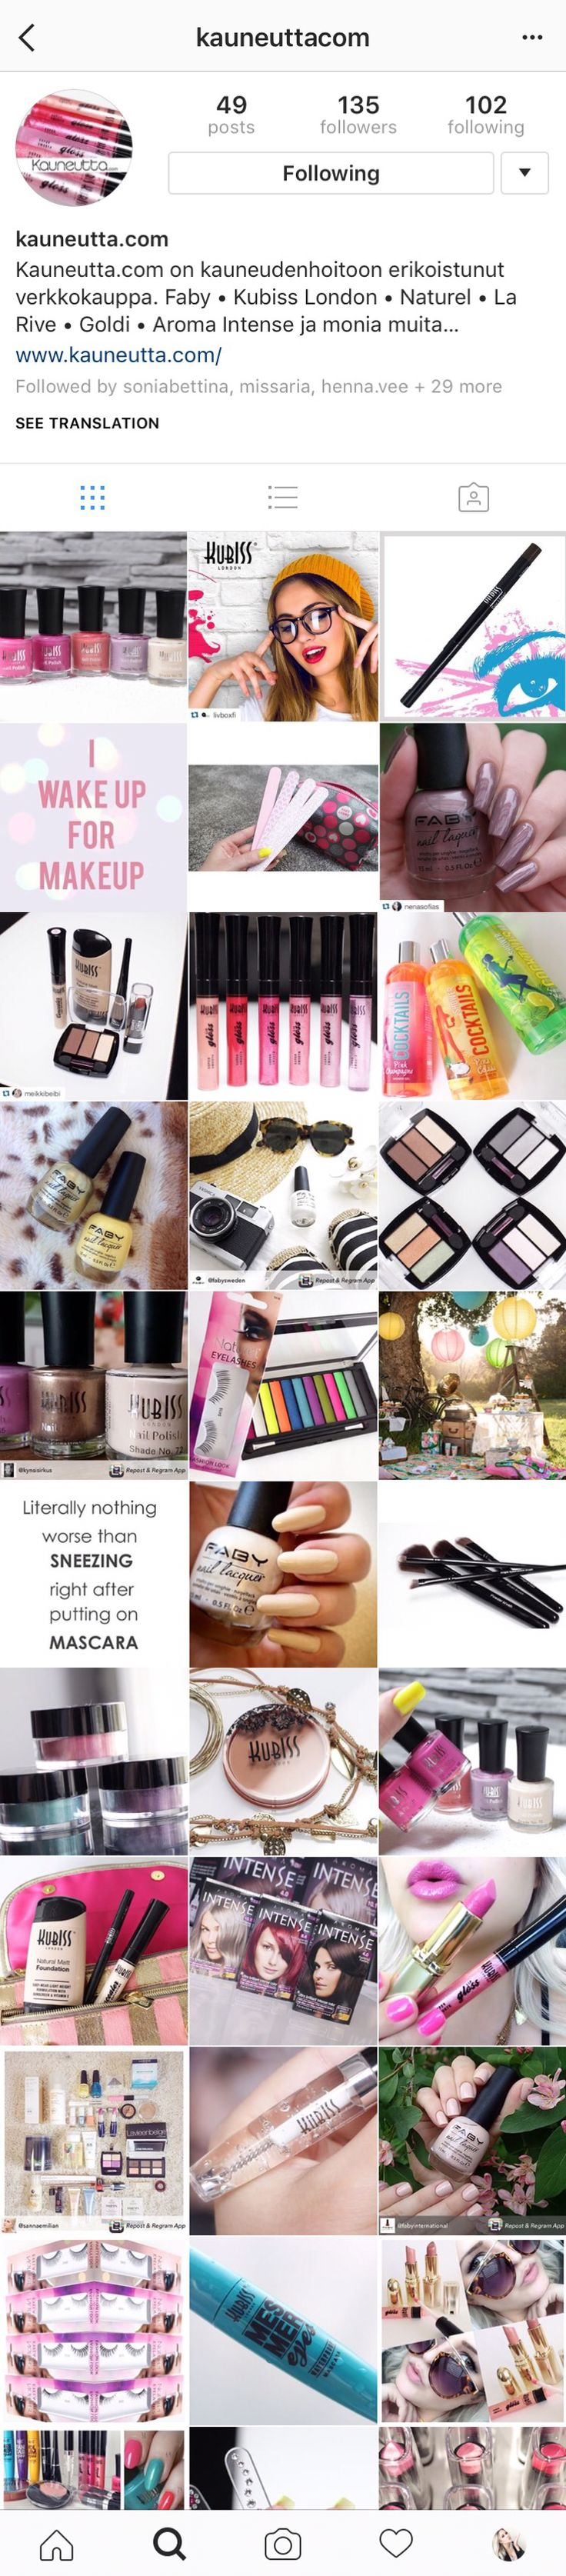 Creating and Upkeepinf an Instagram page, http://niinascoverdesign.weebly.com/